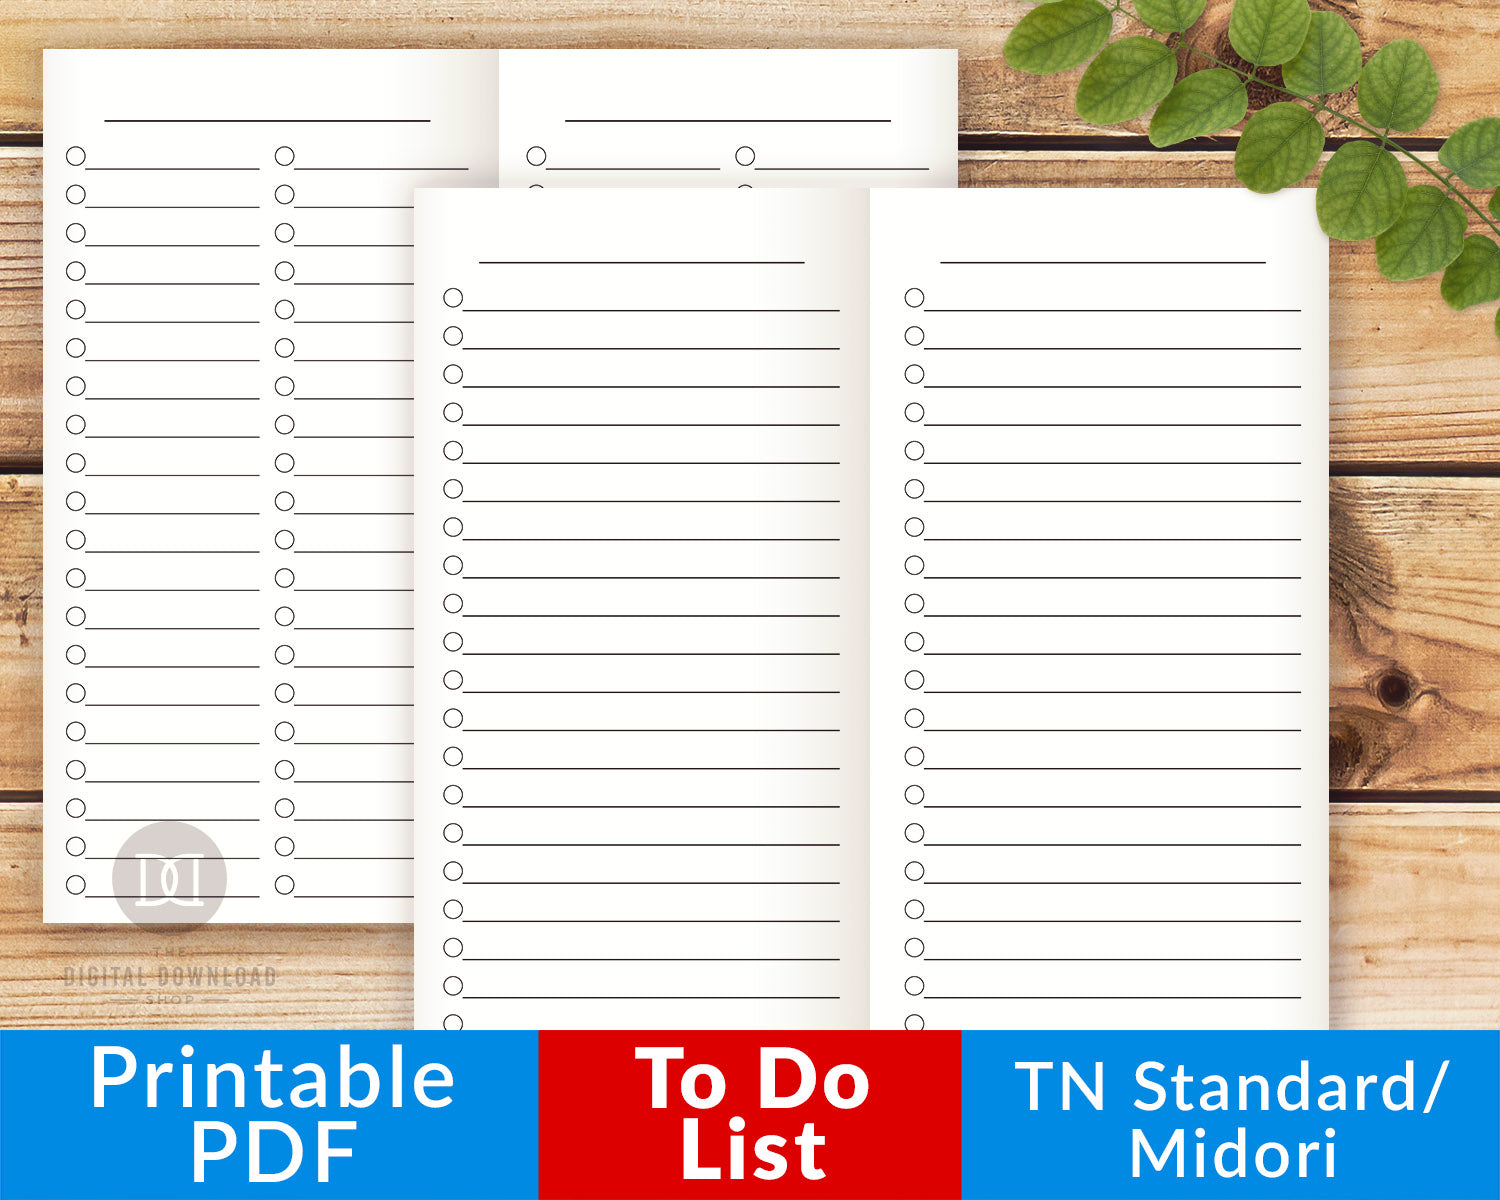 picture regarding To Do List Printables identify TN Conventional/Regular monthly/Midori Toward-Do Lists Printables